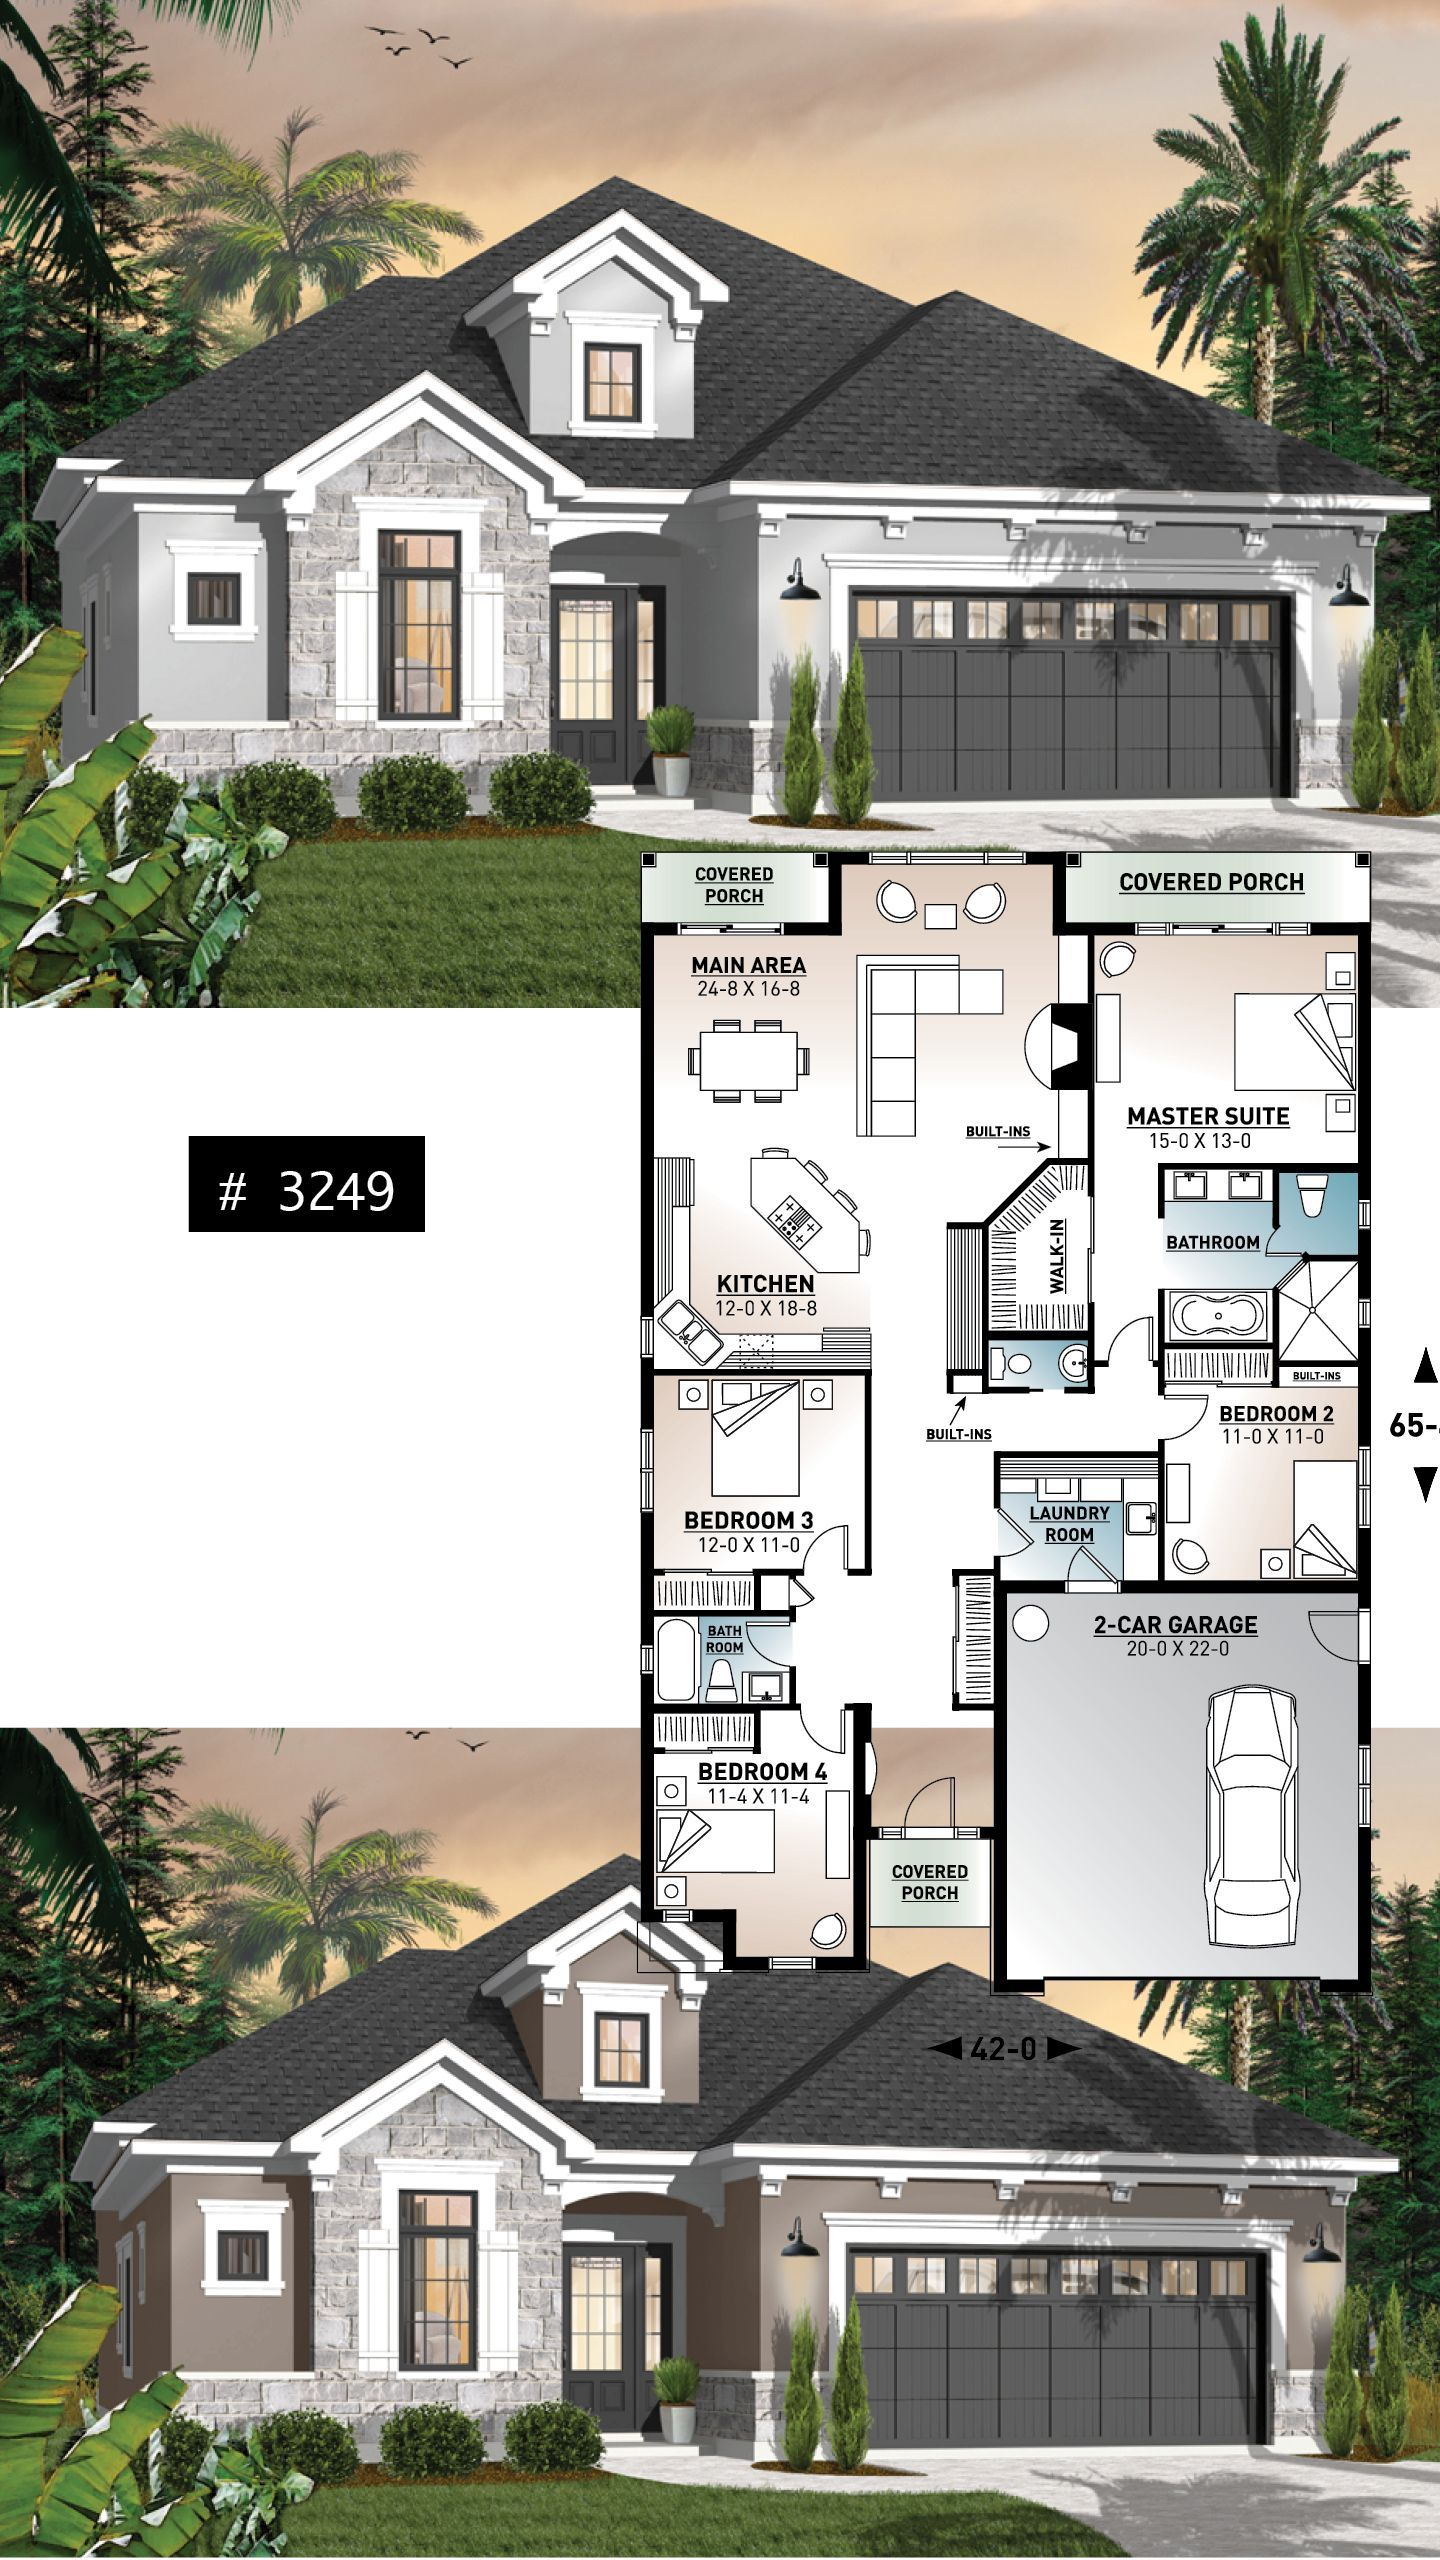 Beach House With Ample Storage And Laundry Area Love The Exterior And Lay Out Ample Area Beach Ho In 2020 Sims House Plans Dream House Plans House Blueprints